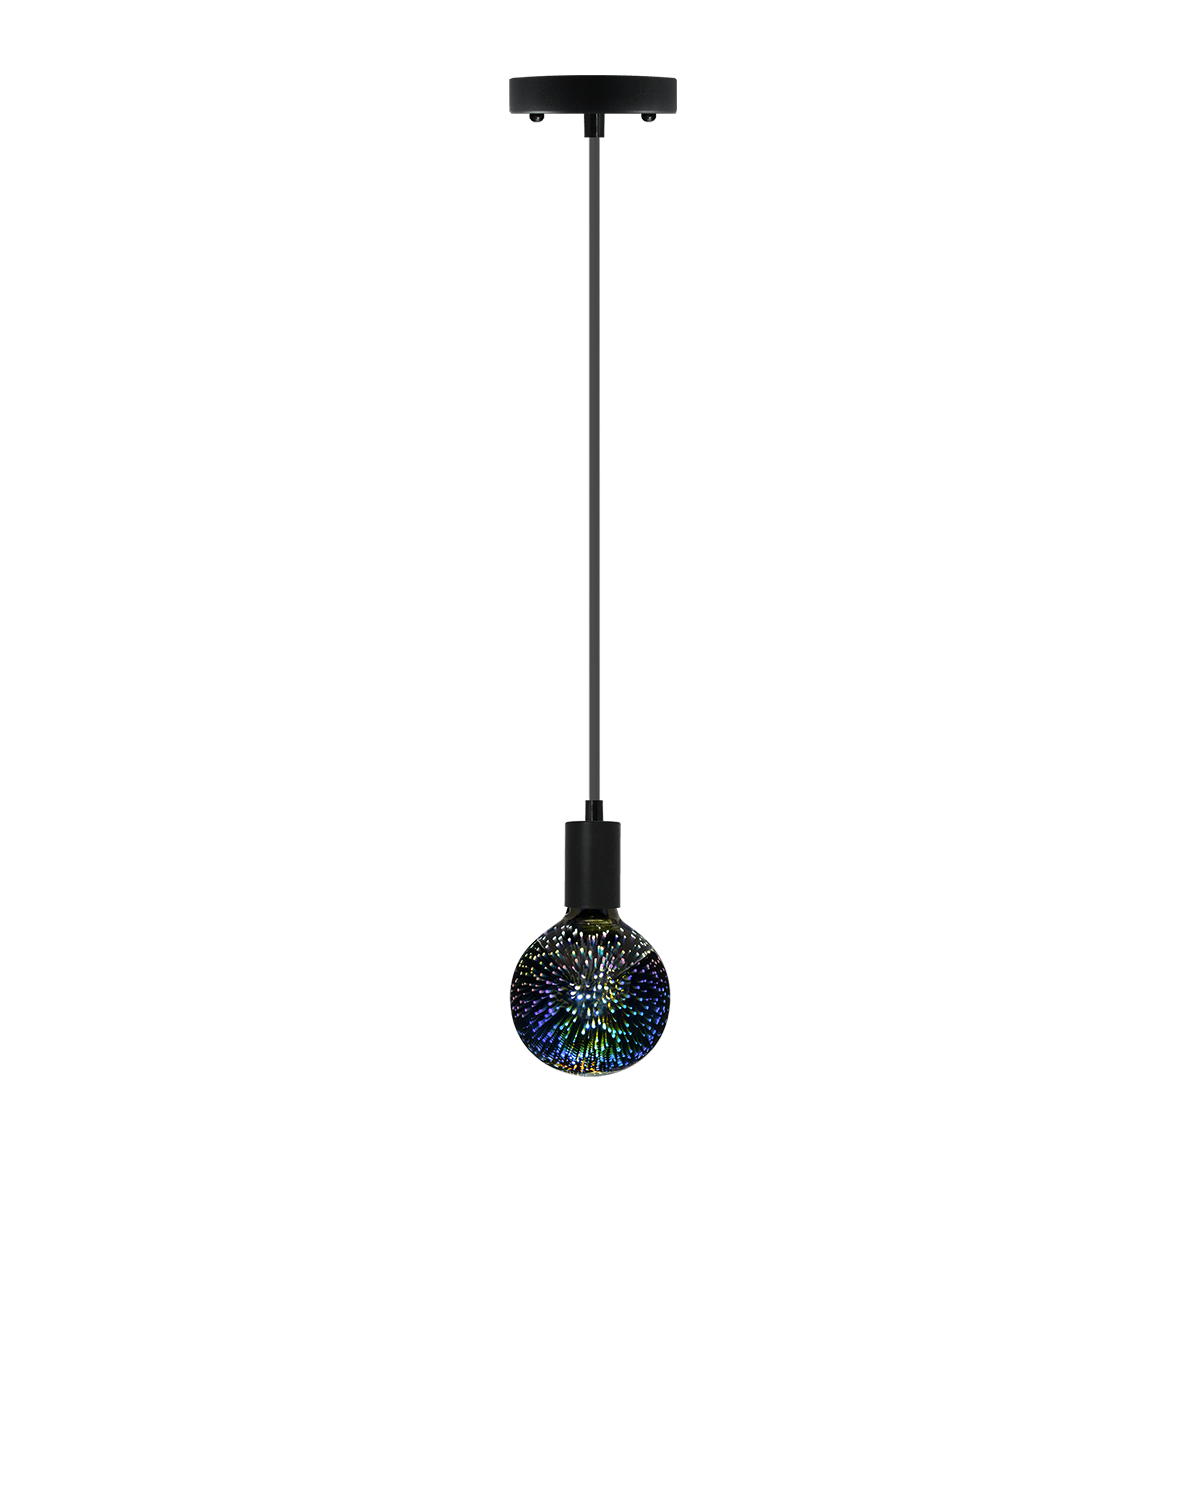 Single Pendant: Black with Firework Bulb Hangout Lighting